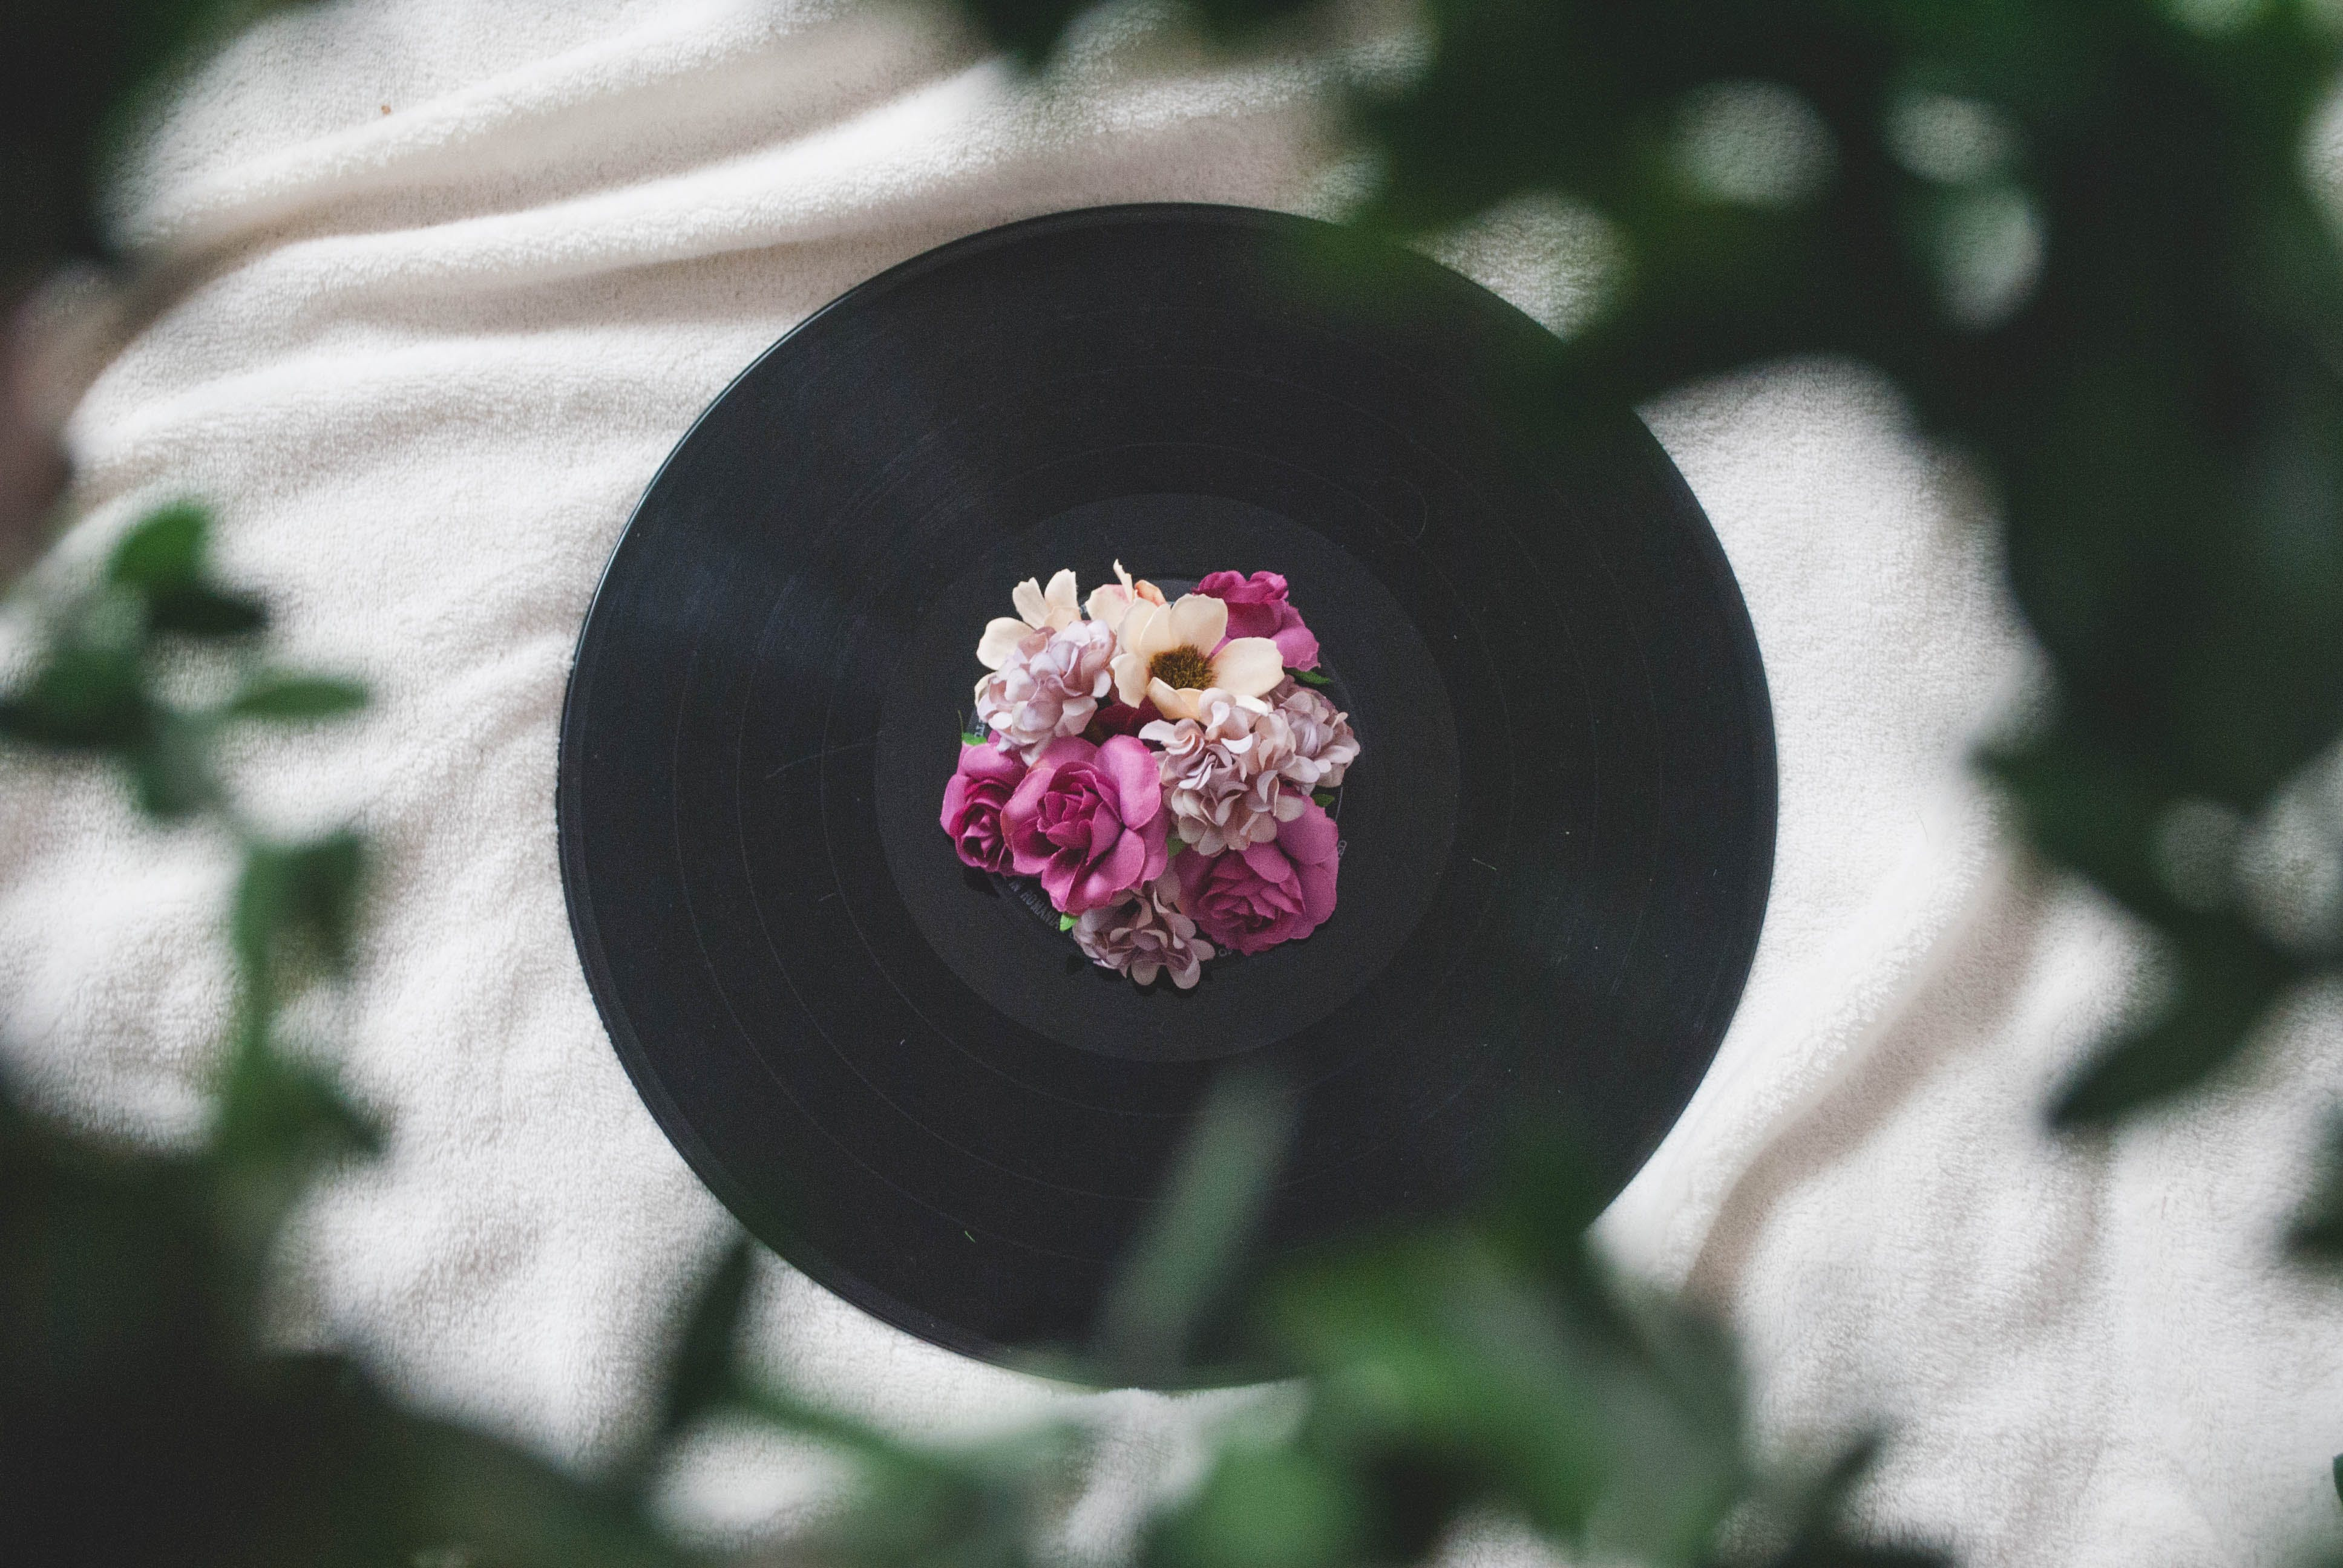 Photography of Flowers On Top of Vinyl Record